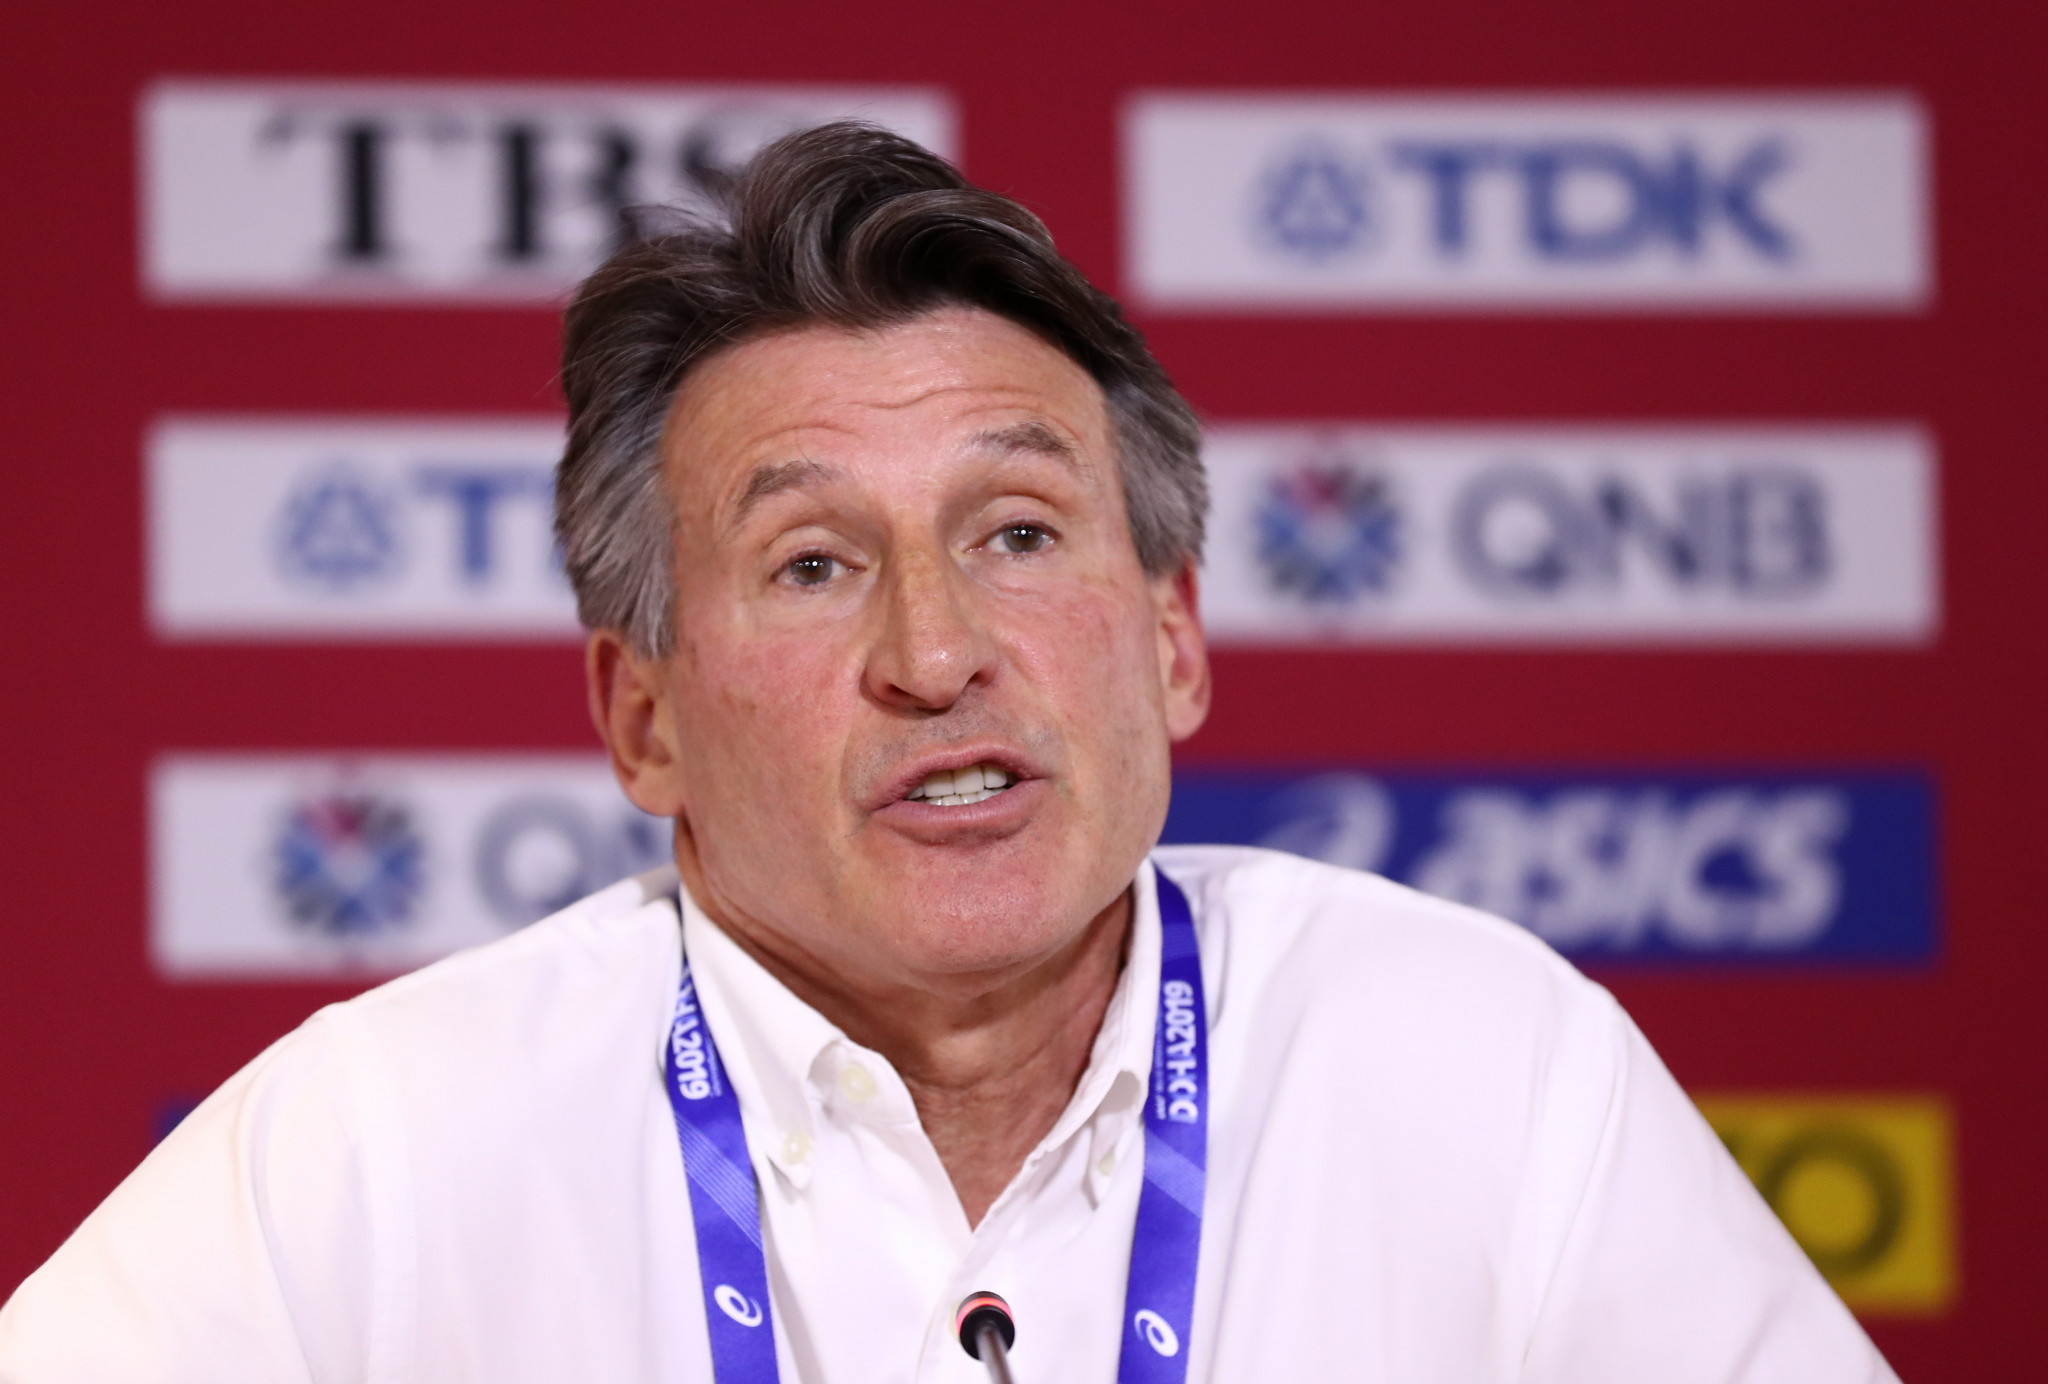 World Athletics President Coe to visit National Stadium during trip to Tokyo